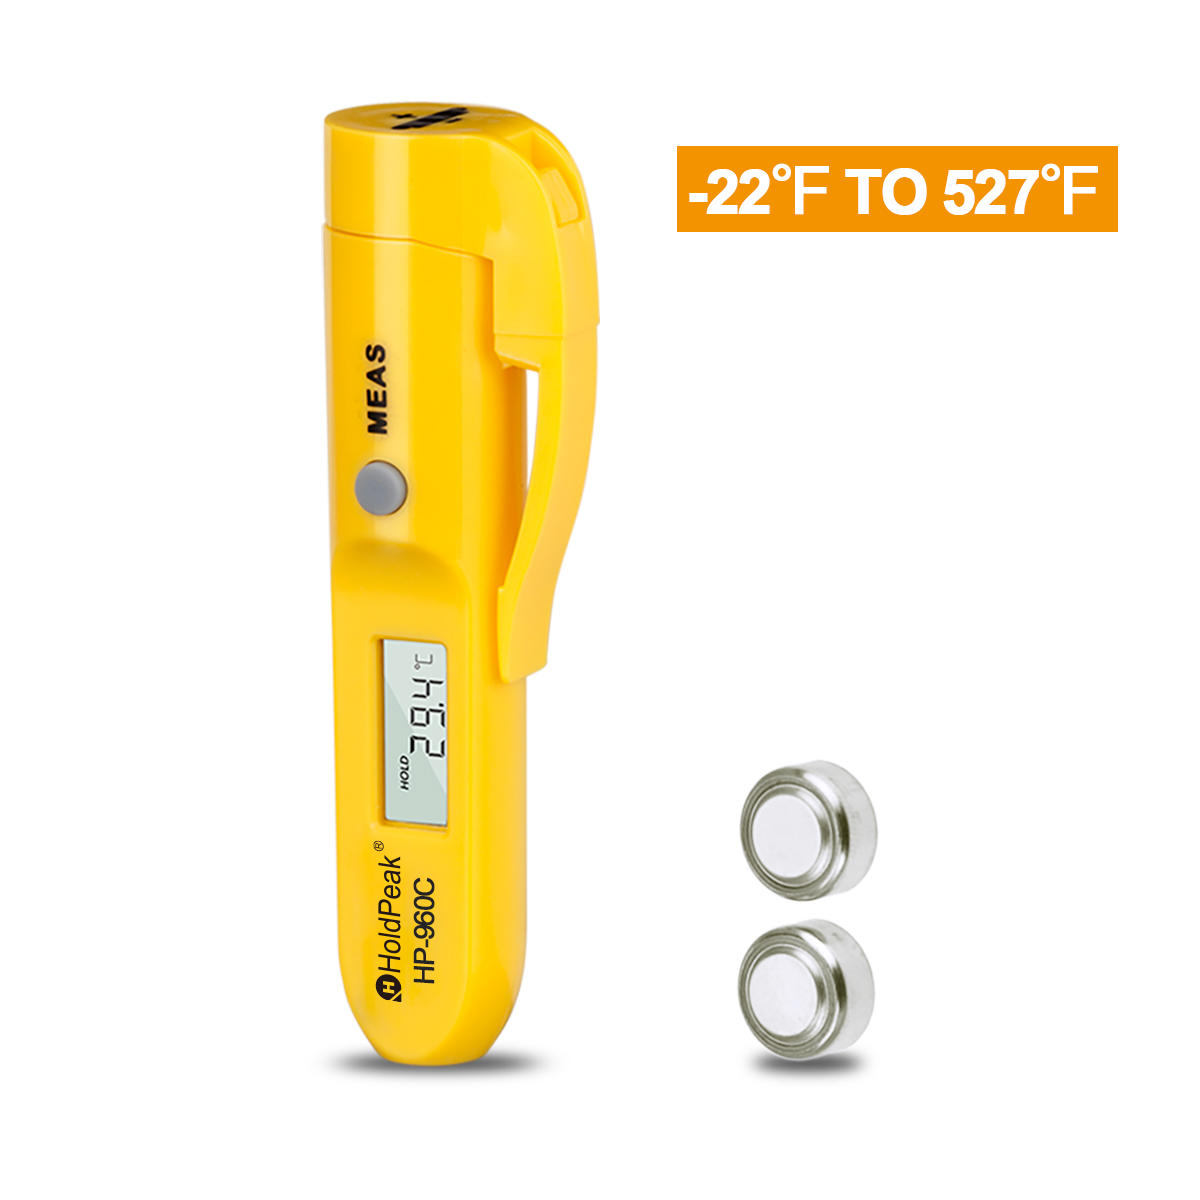 HoldPeak hp981d buy non contact thermometer manufacturers for inspection-1